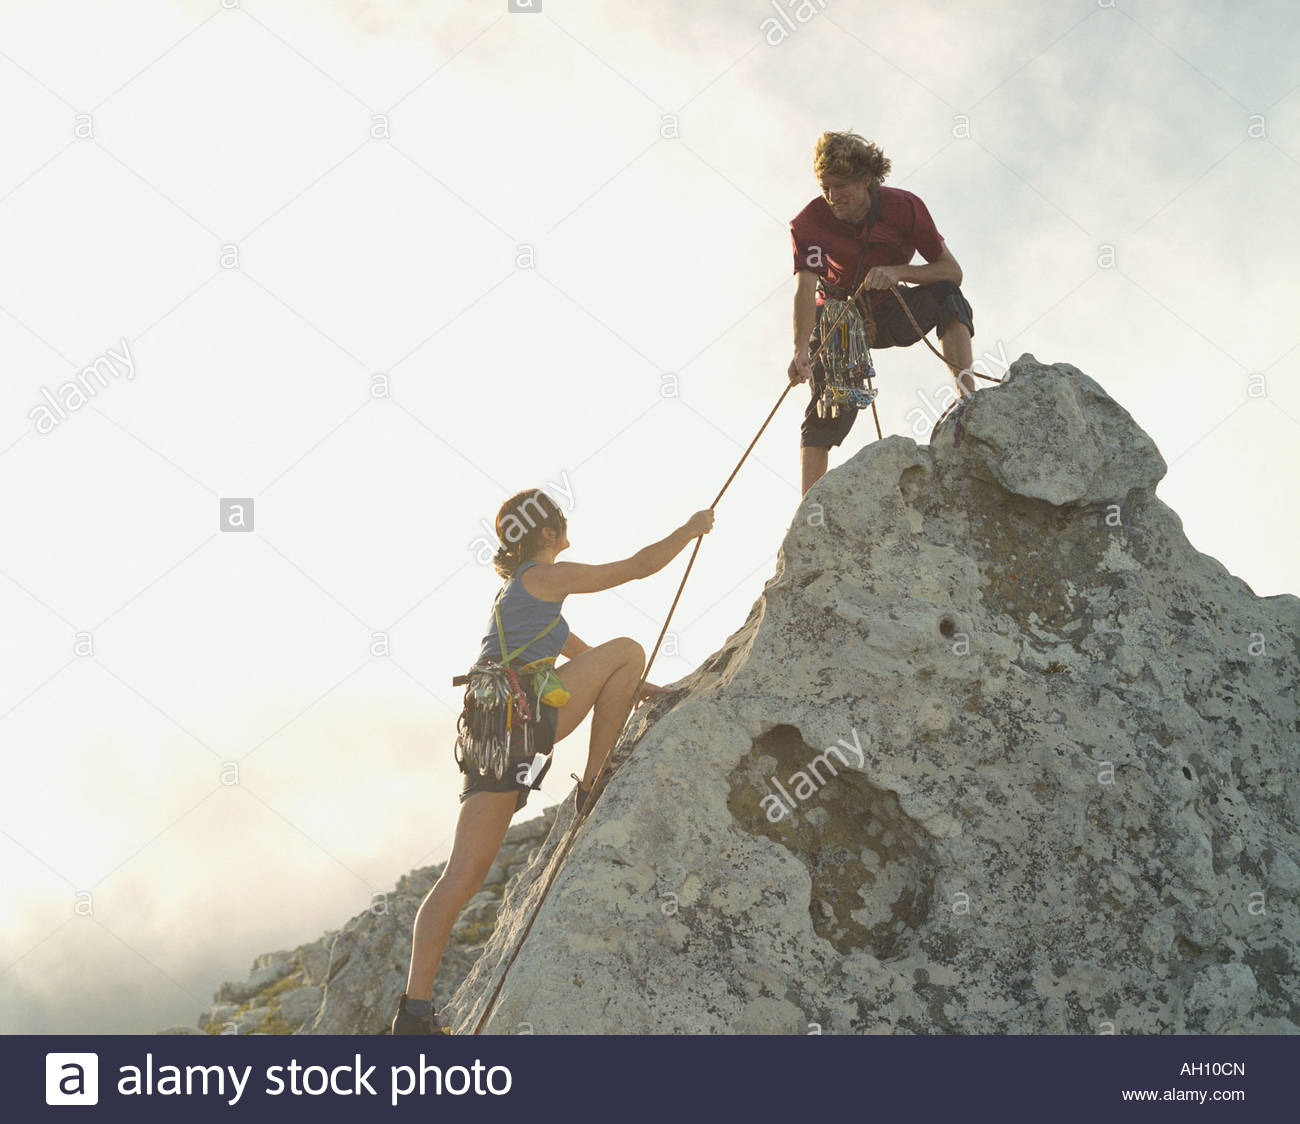 A man helping a woman climber to the top of the mountain - Stock Image